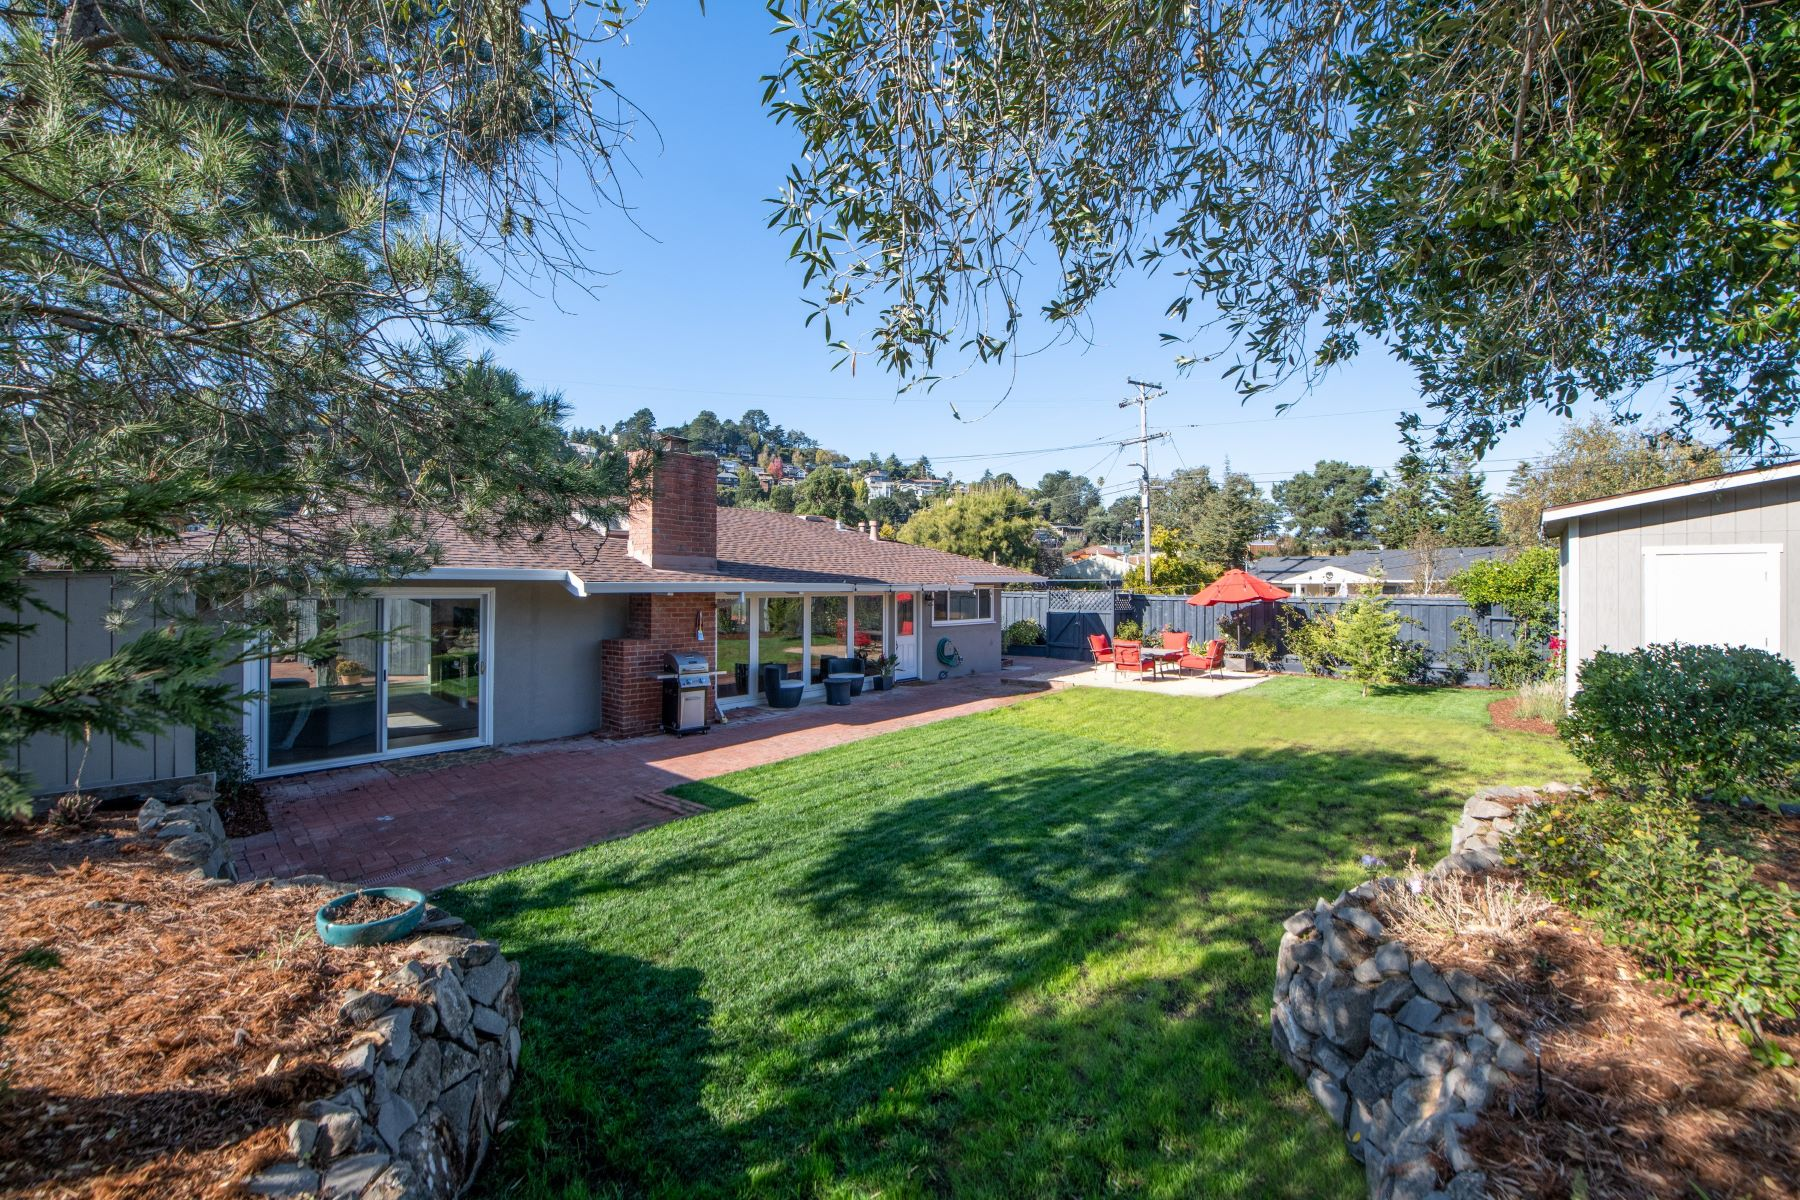 Single Family Homes for Sale at Sweet Bungalow Charmer 239 Flamingo Rd Mill Valley, California 94941 United States